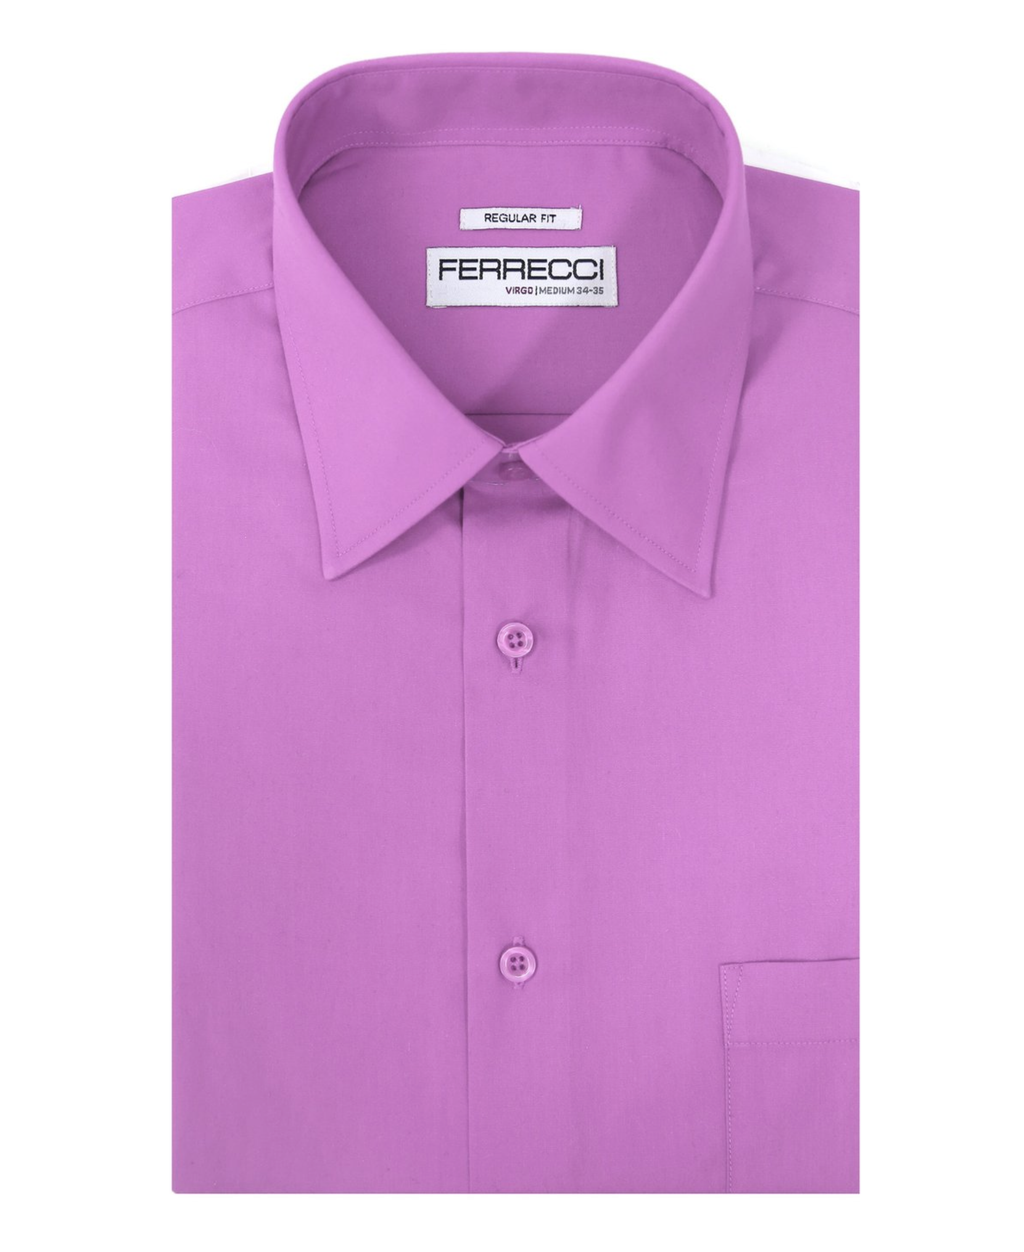 Virgo Lavender Regular Fit Dress Shirt - Giorgio's Menswear